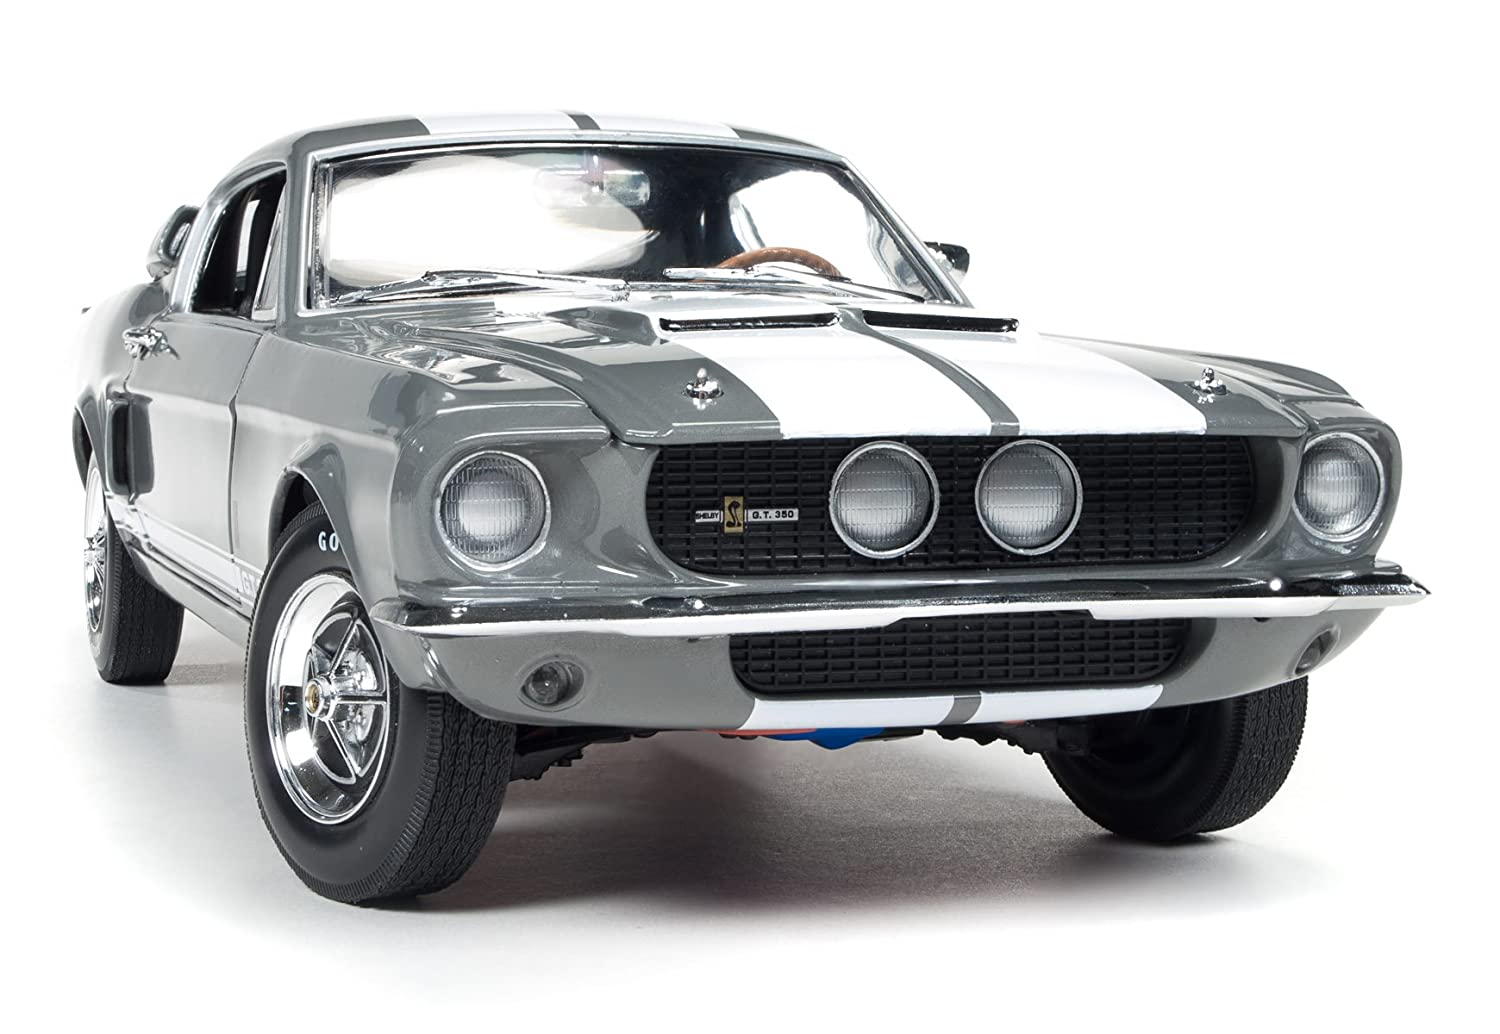 AUTO WORLD AMM1060 SHELBY MUSTANG GT-350 1967 MOUSE-grau W/Weiß STRIPES 1:18